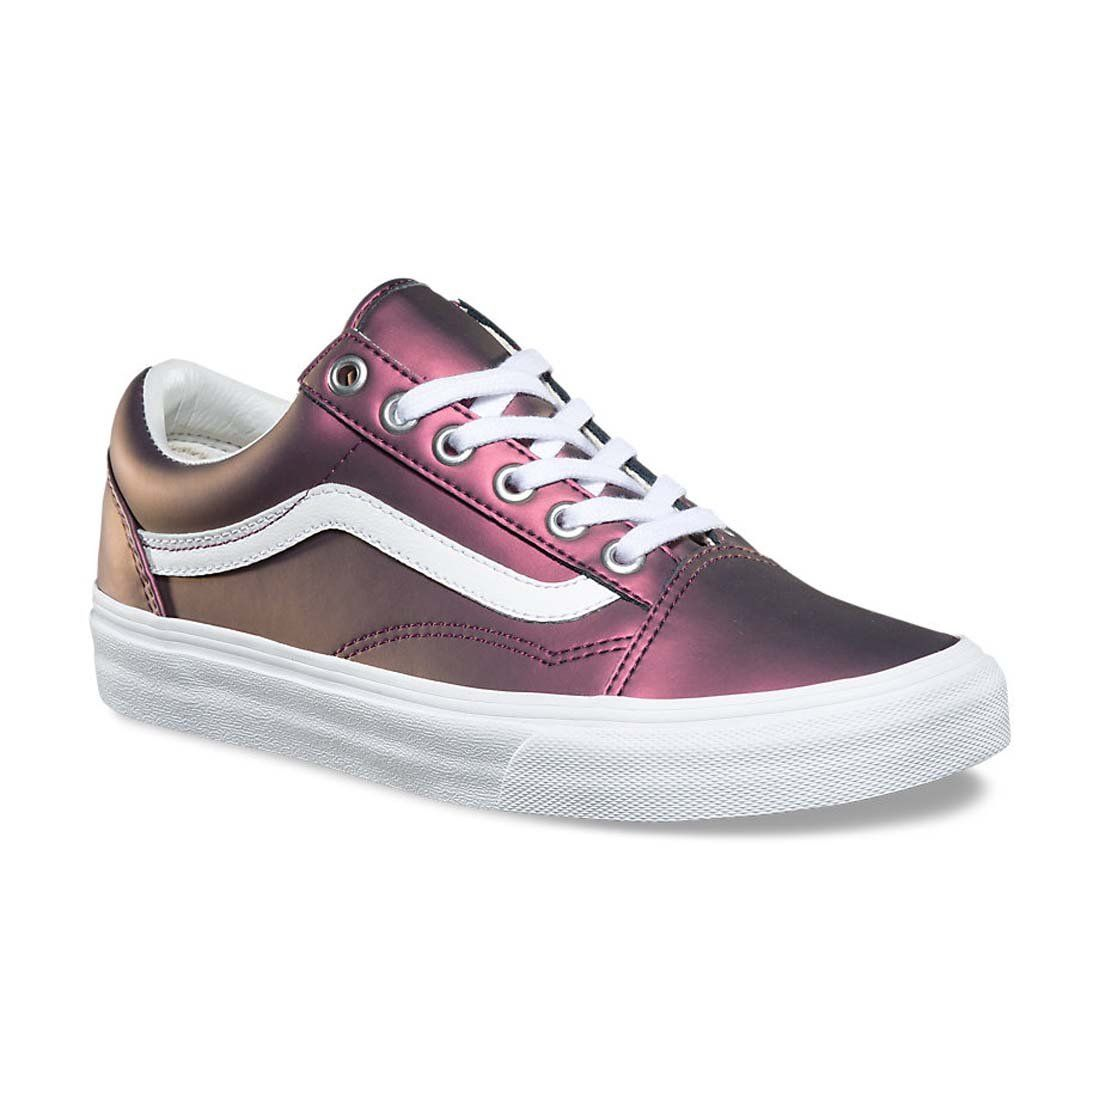 657ed72847 VANS Muted Metallic Old Skool Women